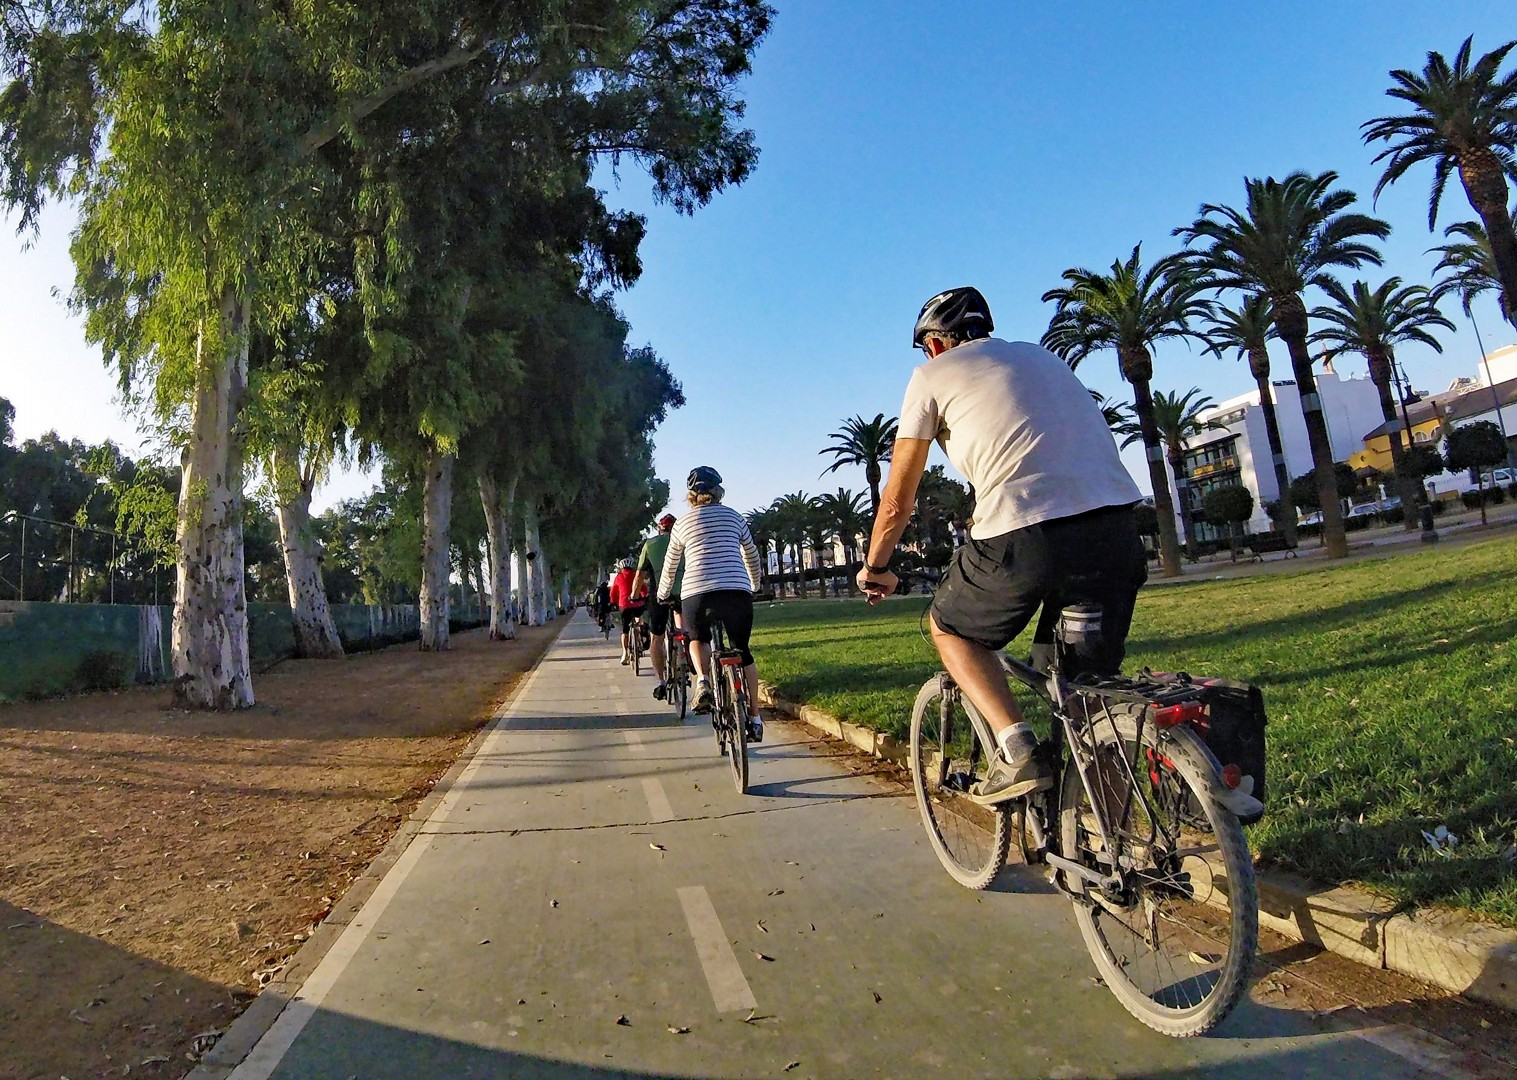 southern-spain-granada-to-seville-self-guided-leisure-cycling-holiday.jpg - Southern Spain - Granada to Seville - Self-Guided Leisure Cycling Holiday - Leisure Cycling